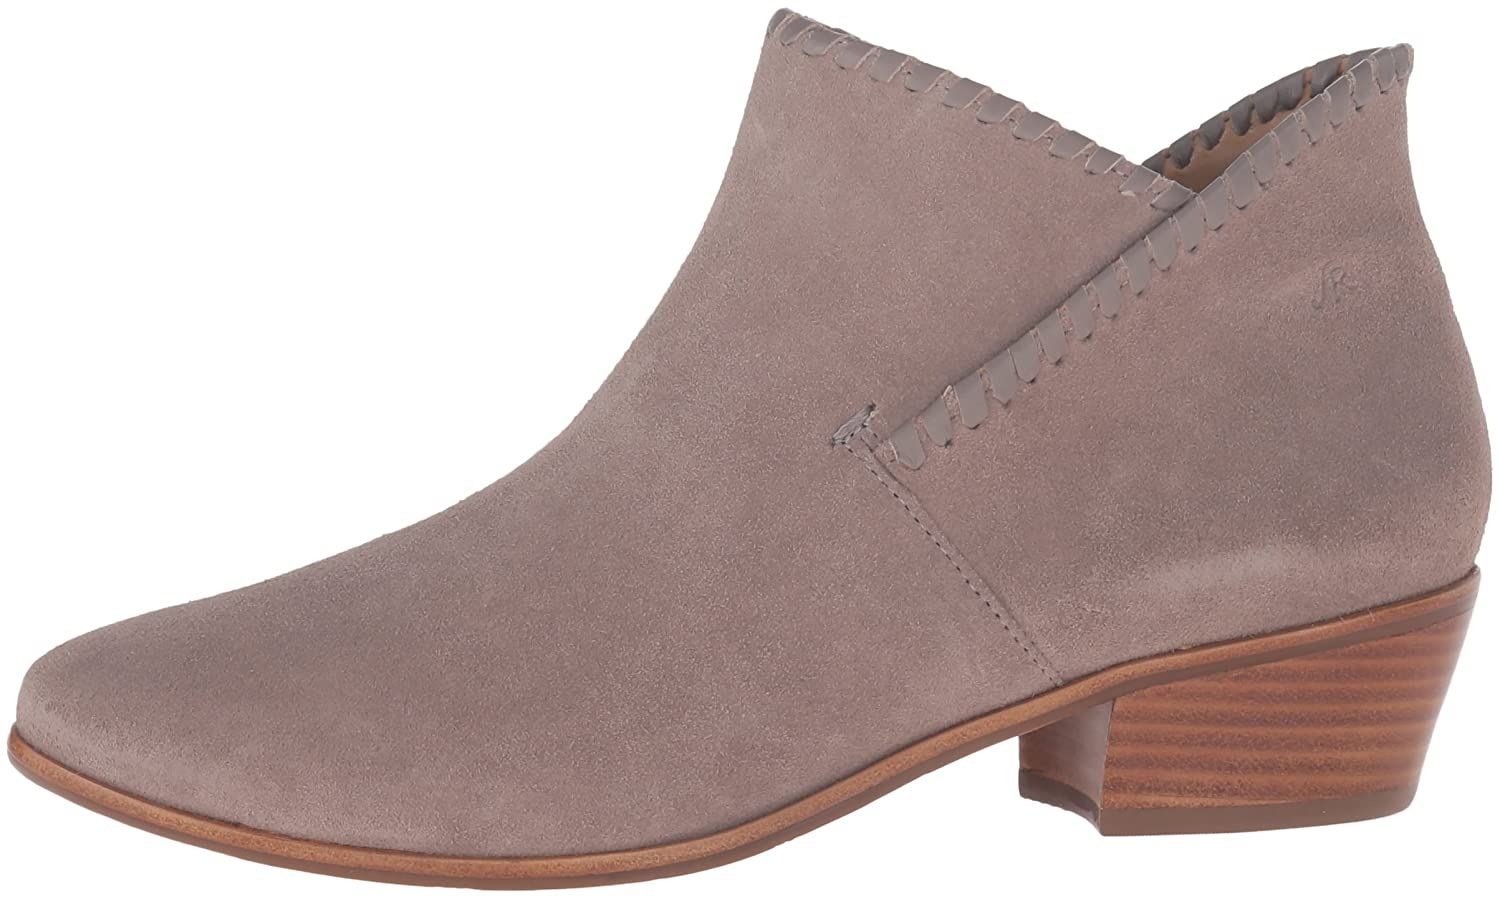 Jack Rogers Women's Sadie Suede Boot B01DCSS76K 7 B(M) US|Light Grey